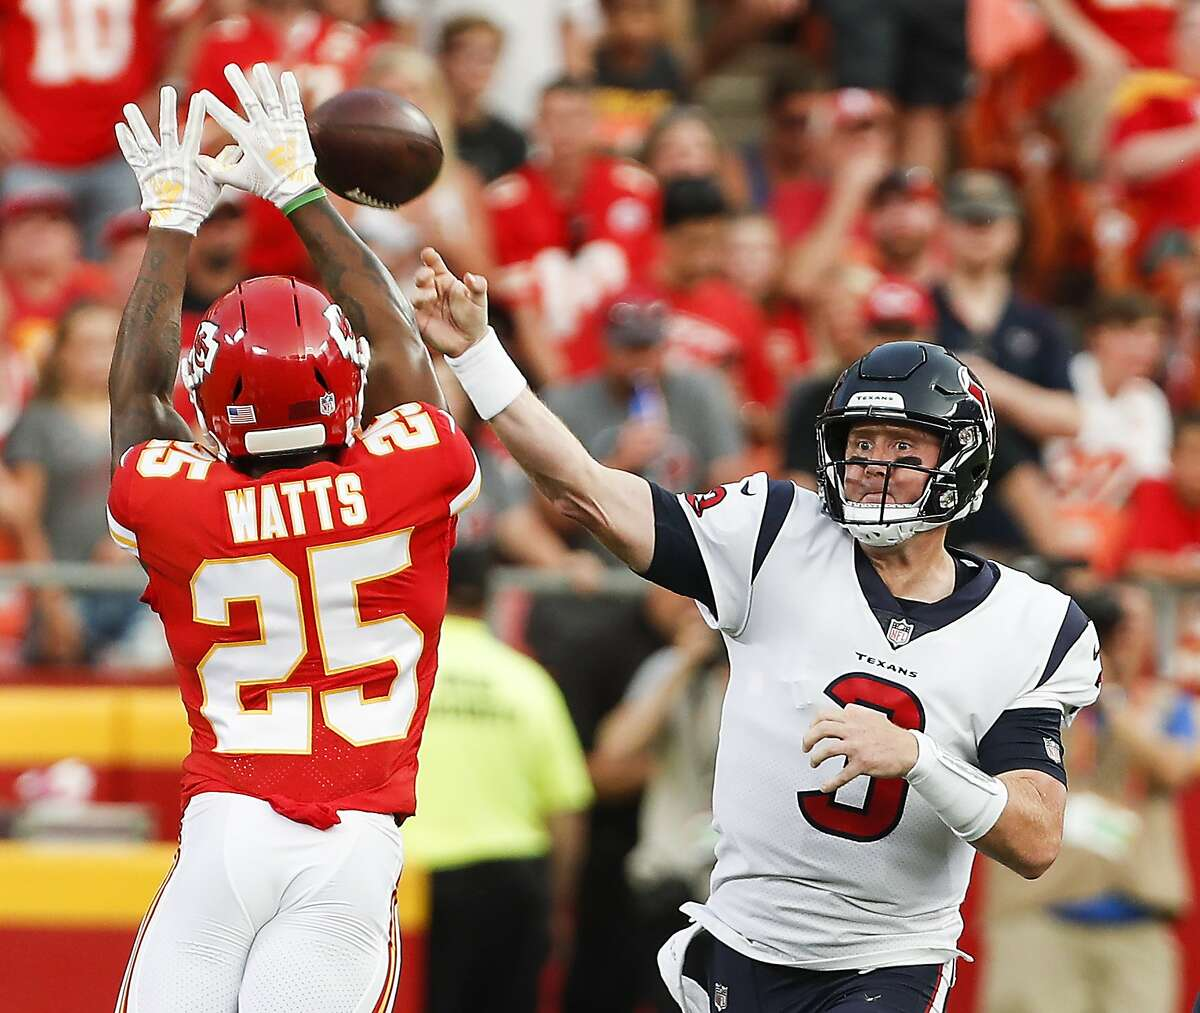 Chiefs Armani Watts, a safety from Forney who went to Texas A&M, spent much of his rookie season with the Chiefs on injured reserve. Now healthy in his second season, Watts could play a big role after starter Juan Thornhill tore his ACL in the regular season finale.